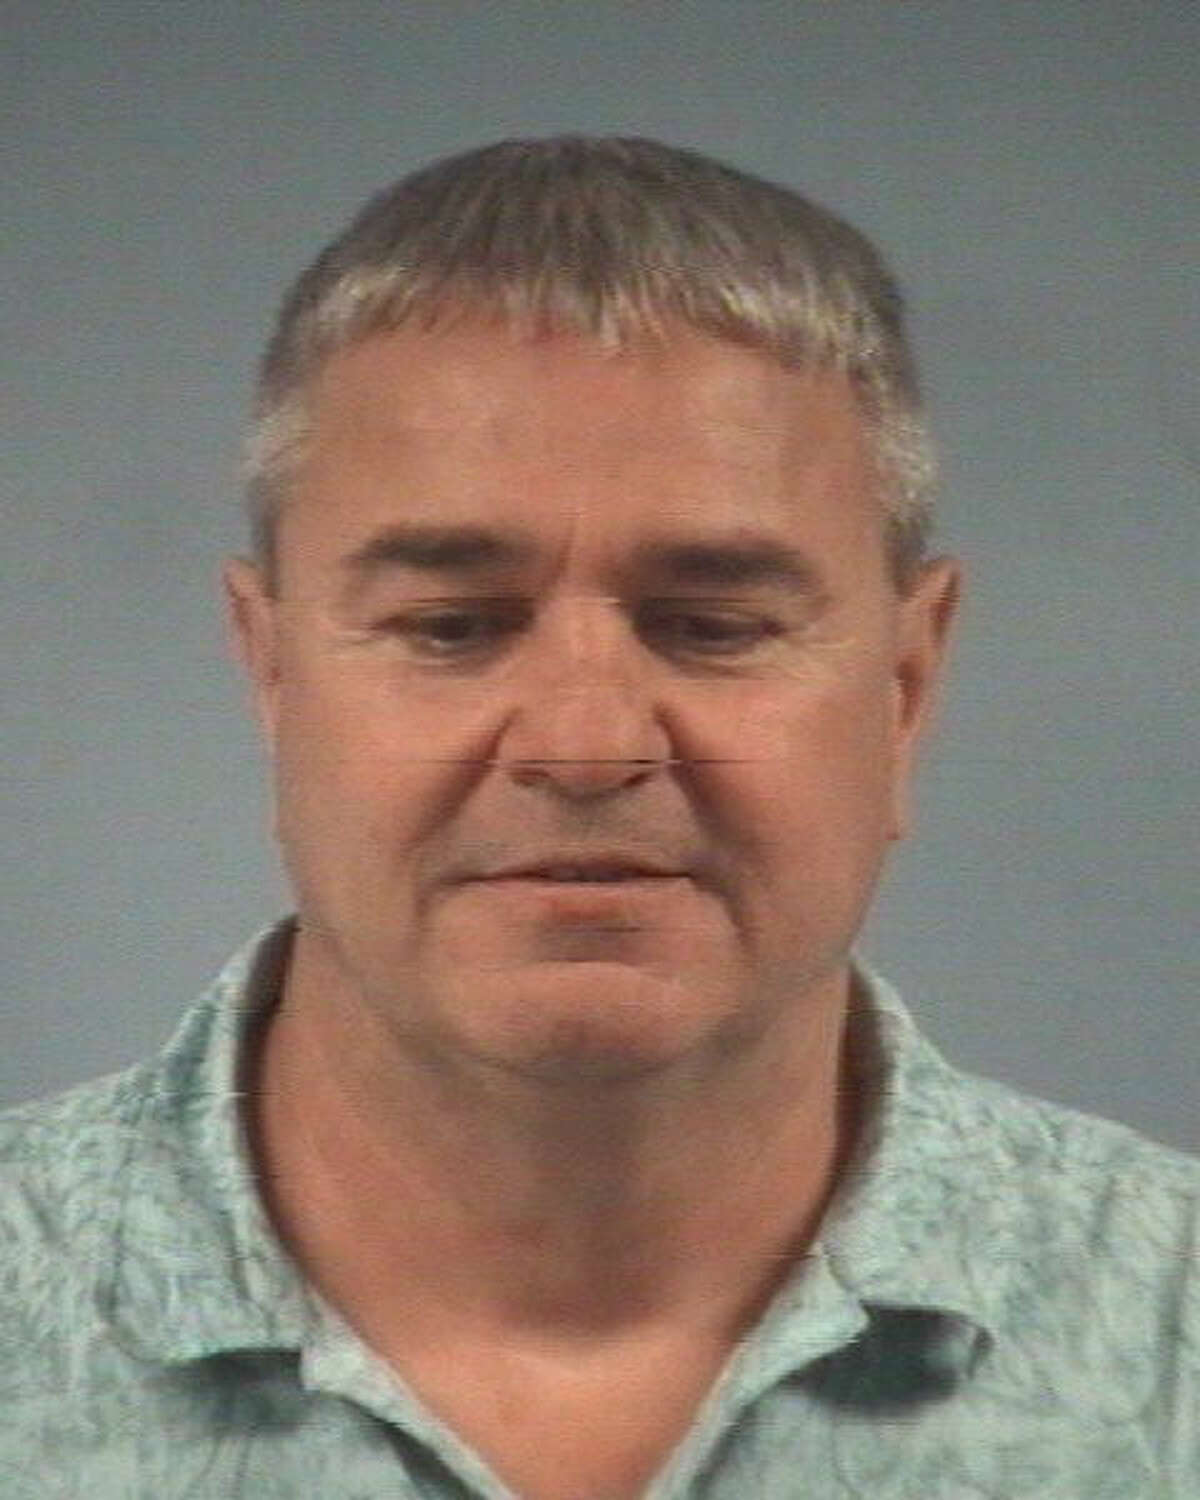 Gregory Kennedy, 56, was charged with furnishing alcohol to minors and violating the open party ordinance.